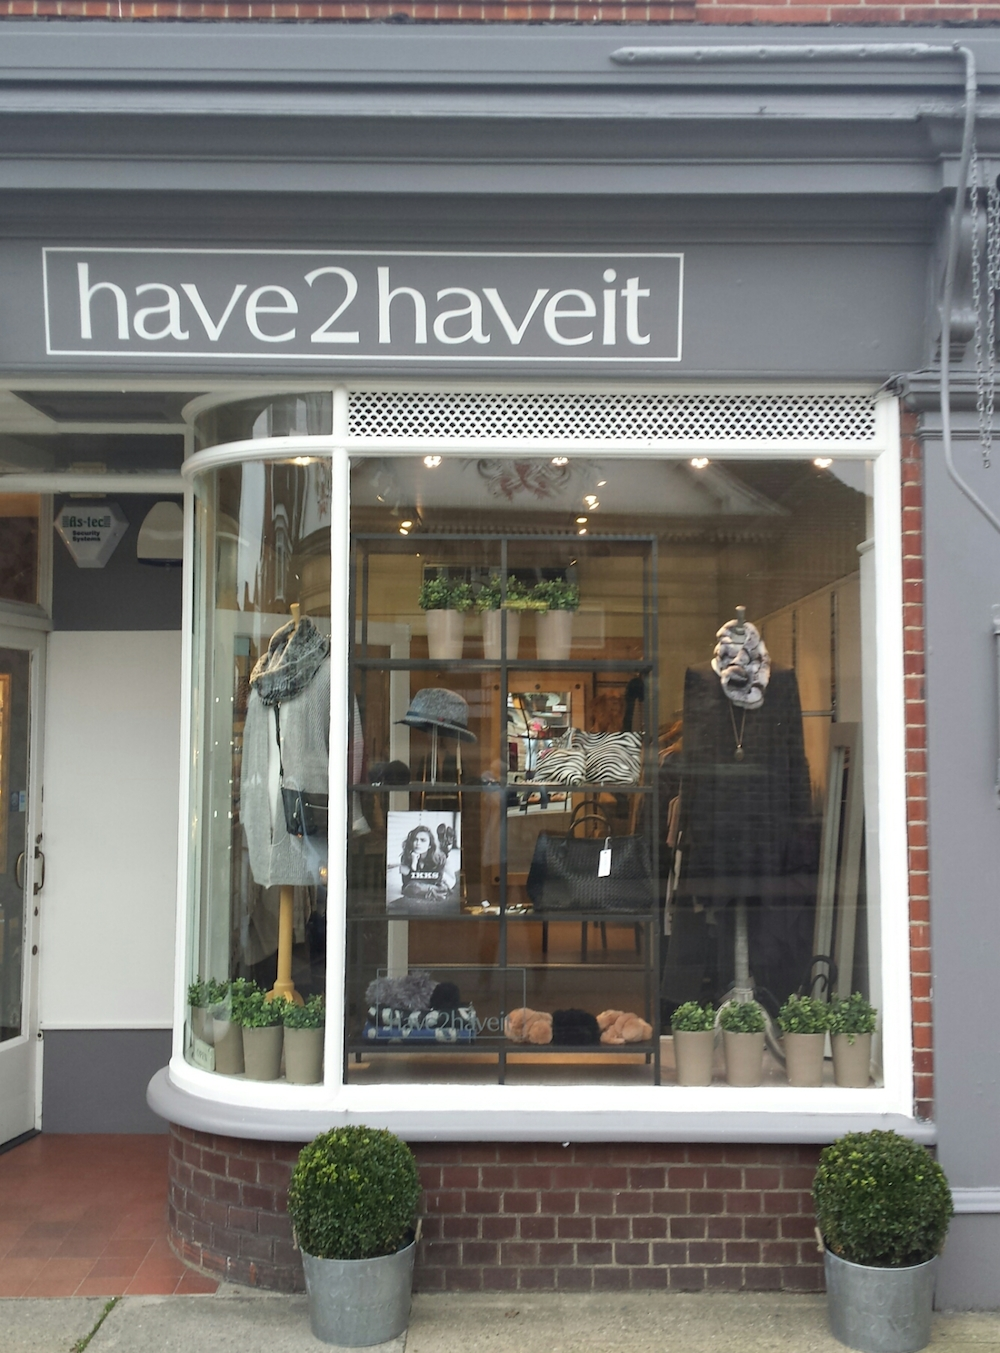 have2haveit Clothing Shop, Haslemere